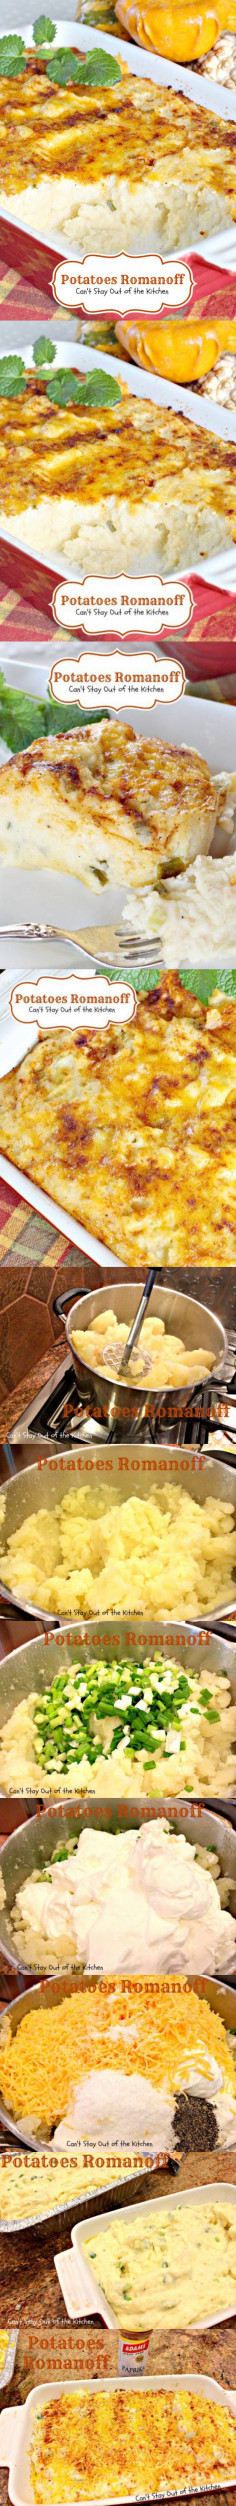 Potatoes Romanoff - Can't Stay Out of the Kitchen